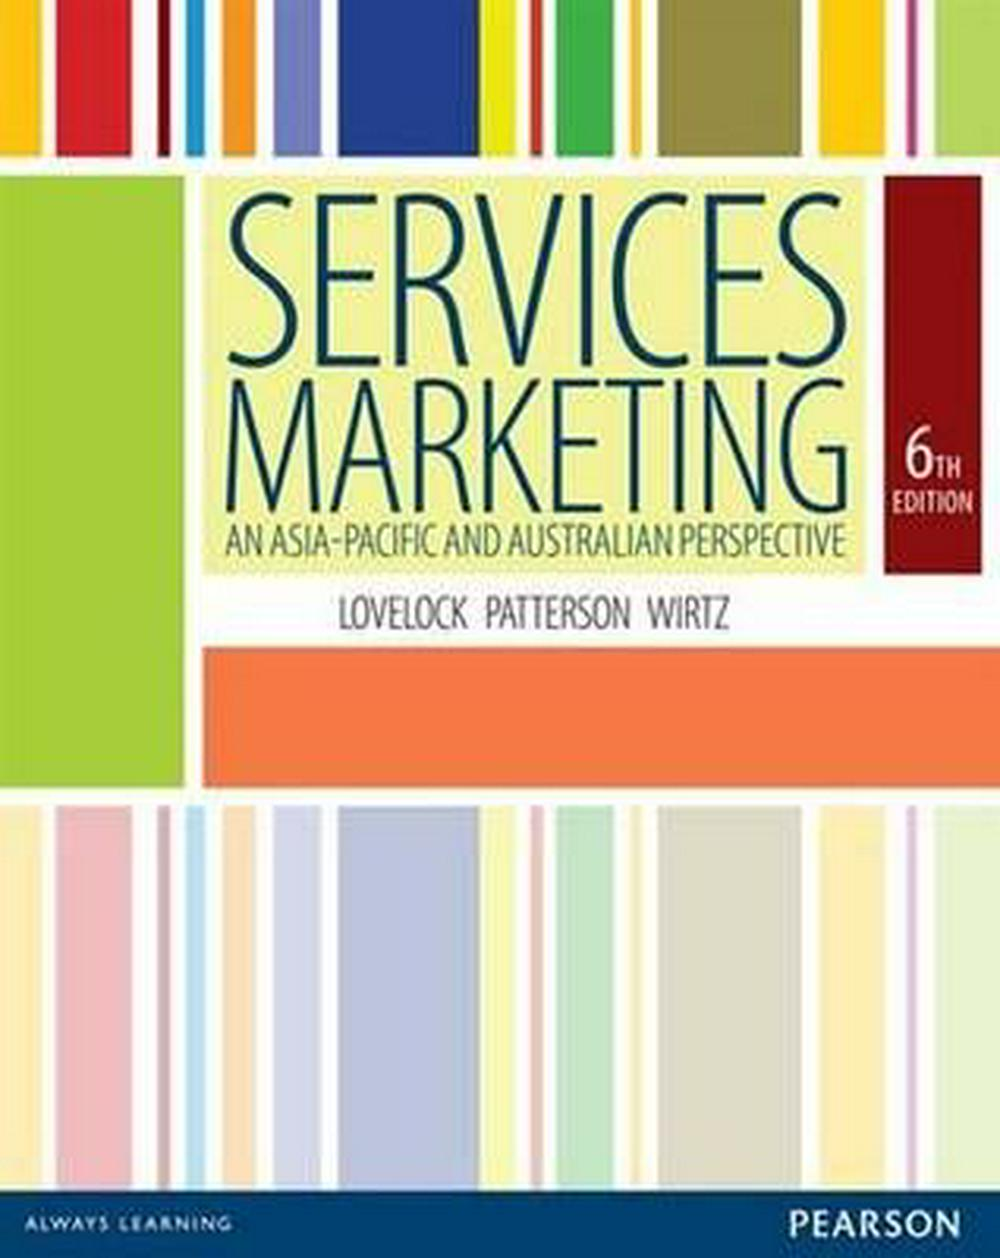 Services Marketing by Christopher H. Lovelock, Paul Patterson, Jochen Wirtz, ISBN: 9781486002702